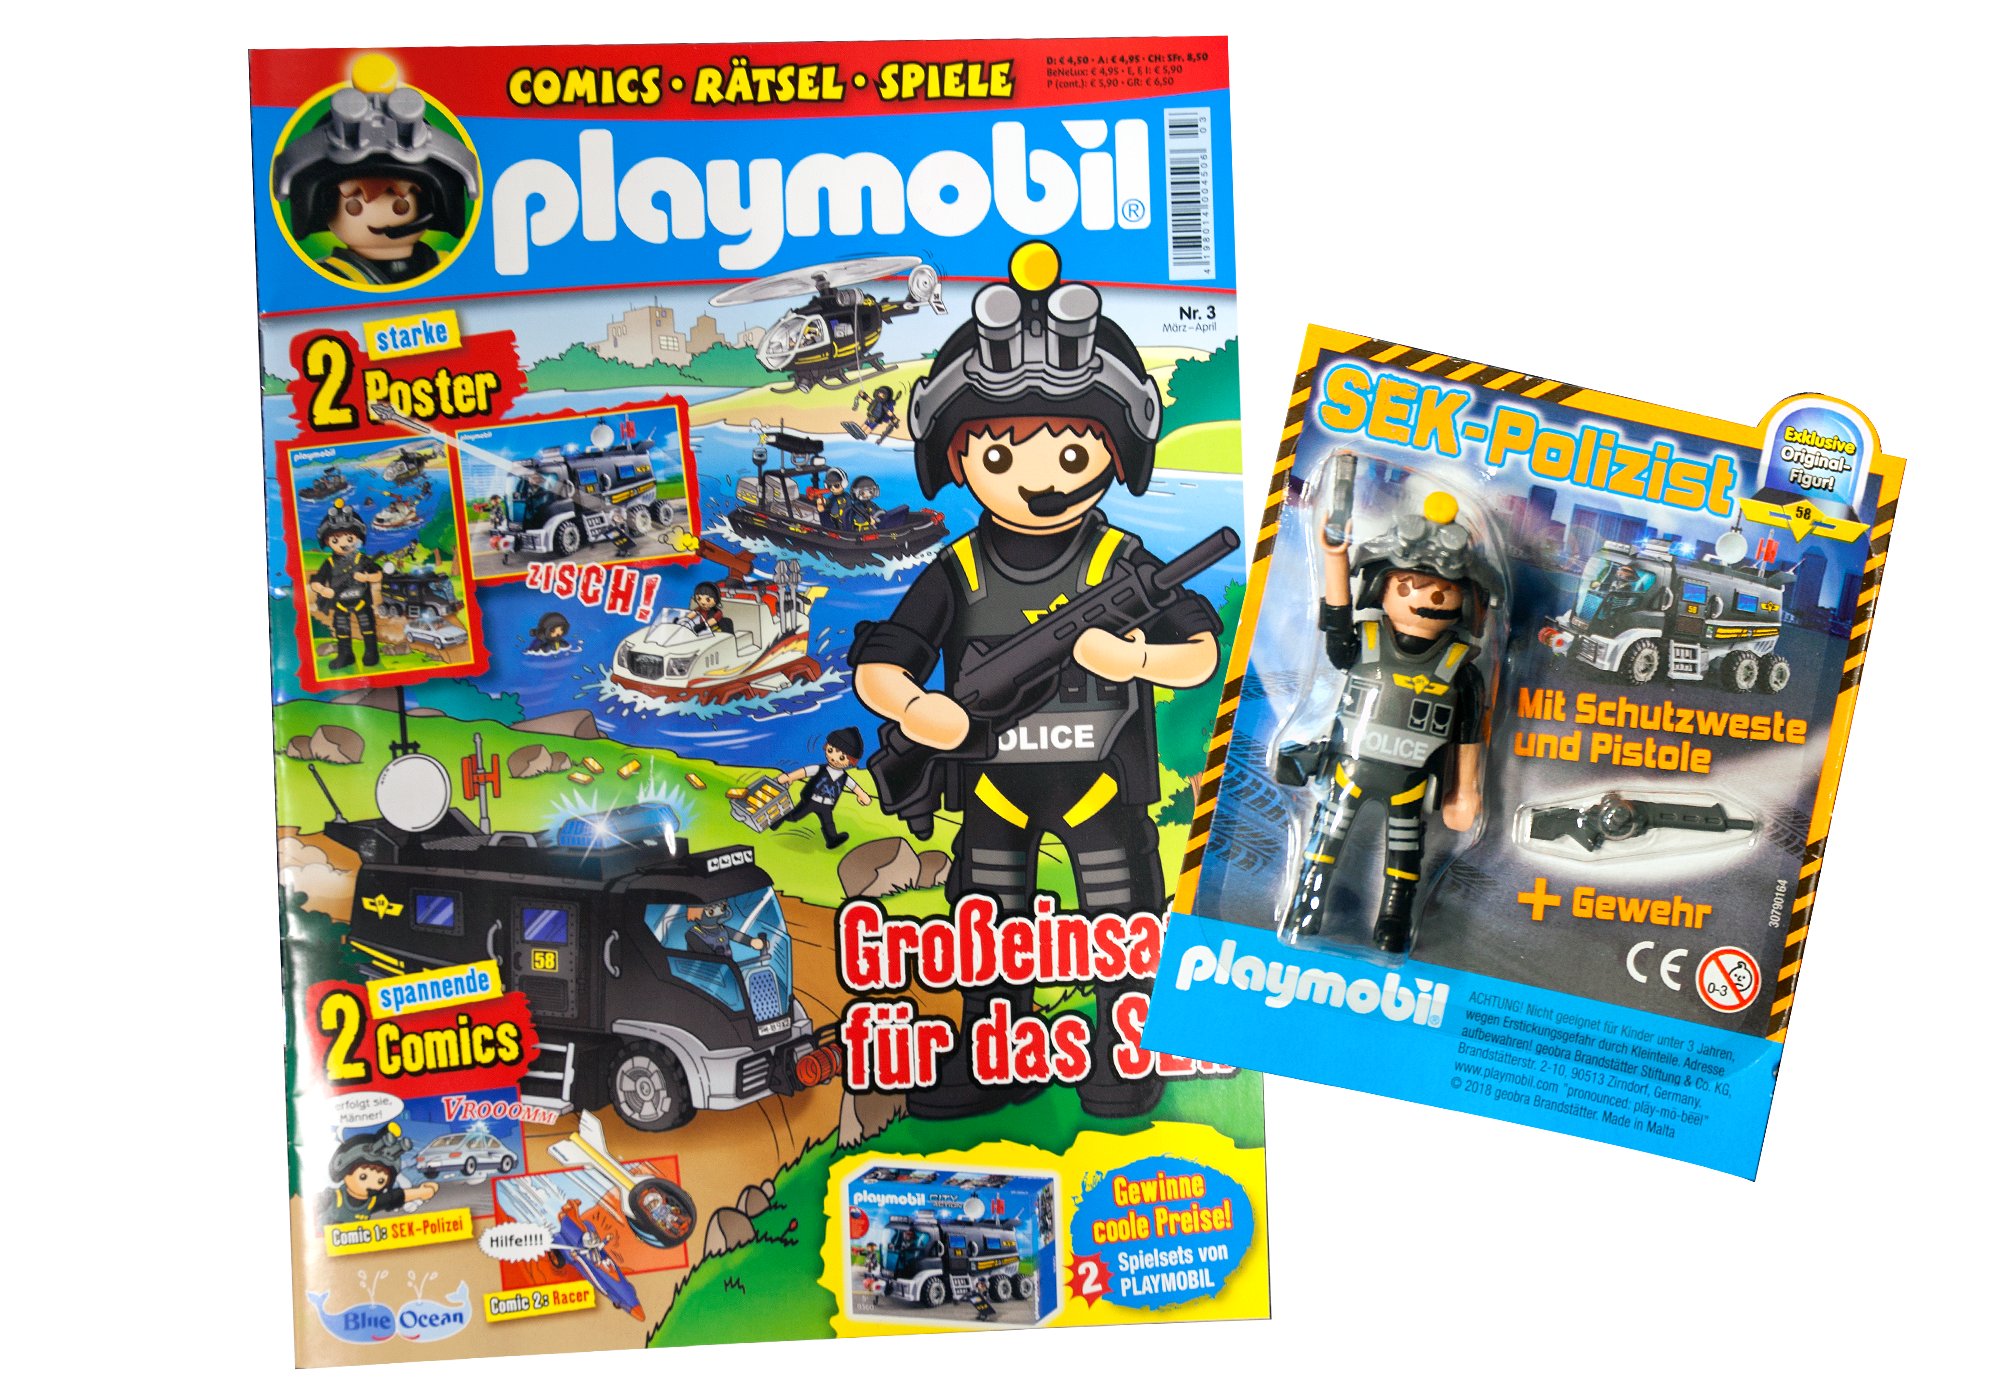 http://media.playmobil.com/i/playmobil/80604_product_detail